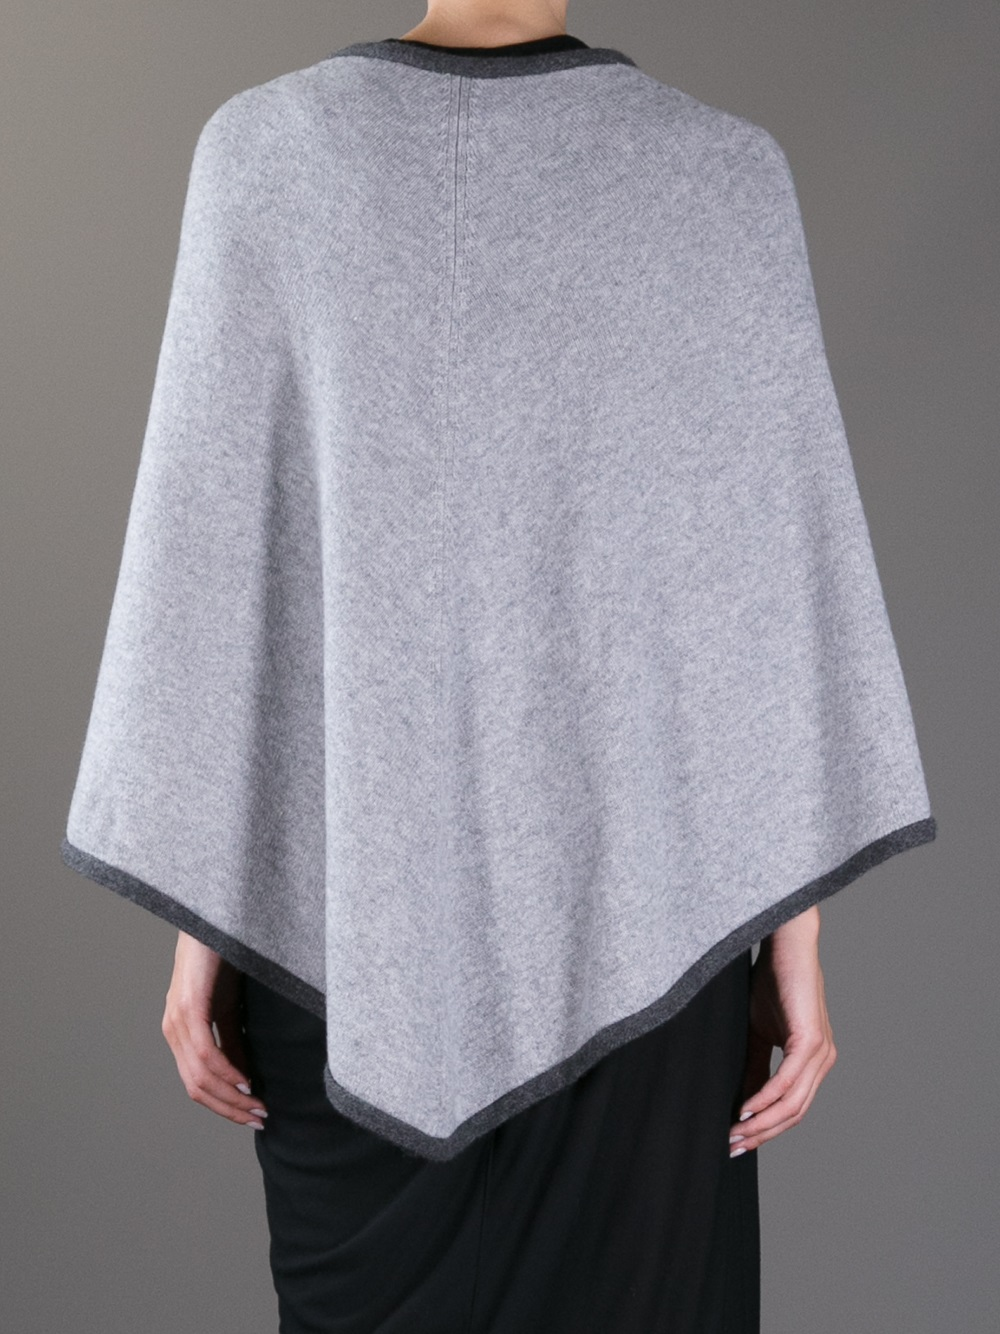 lyst ftc cashmere poncho in gray. Black Bedroom Furniture Sets. Home Design Ideas